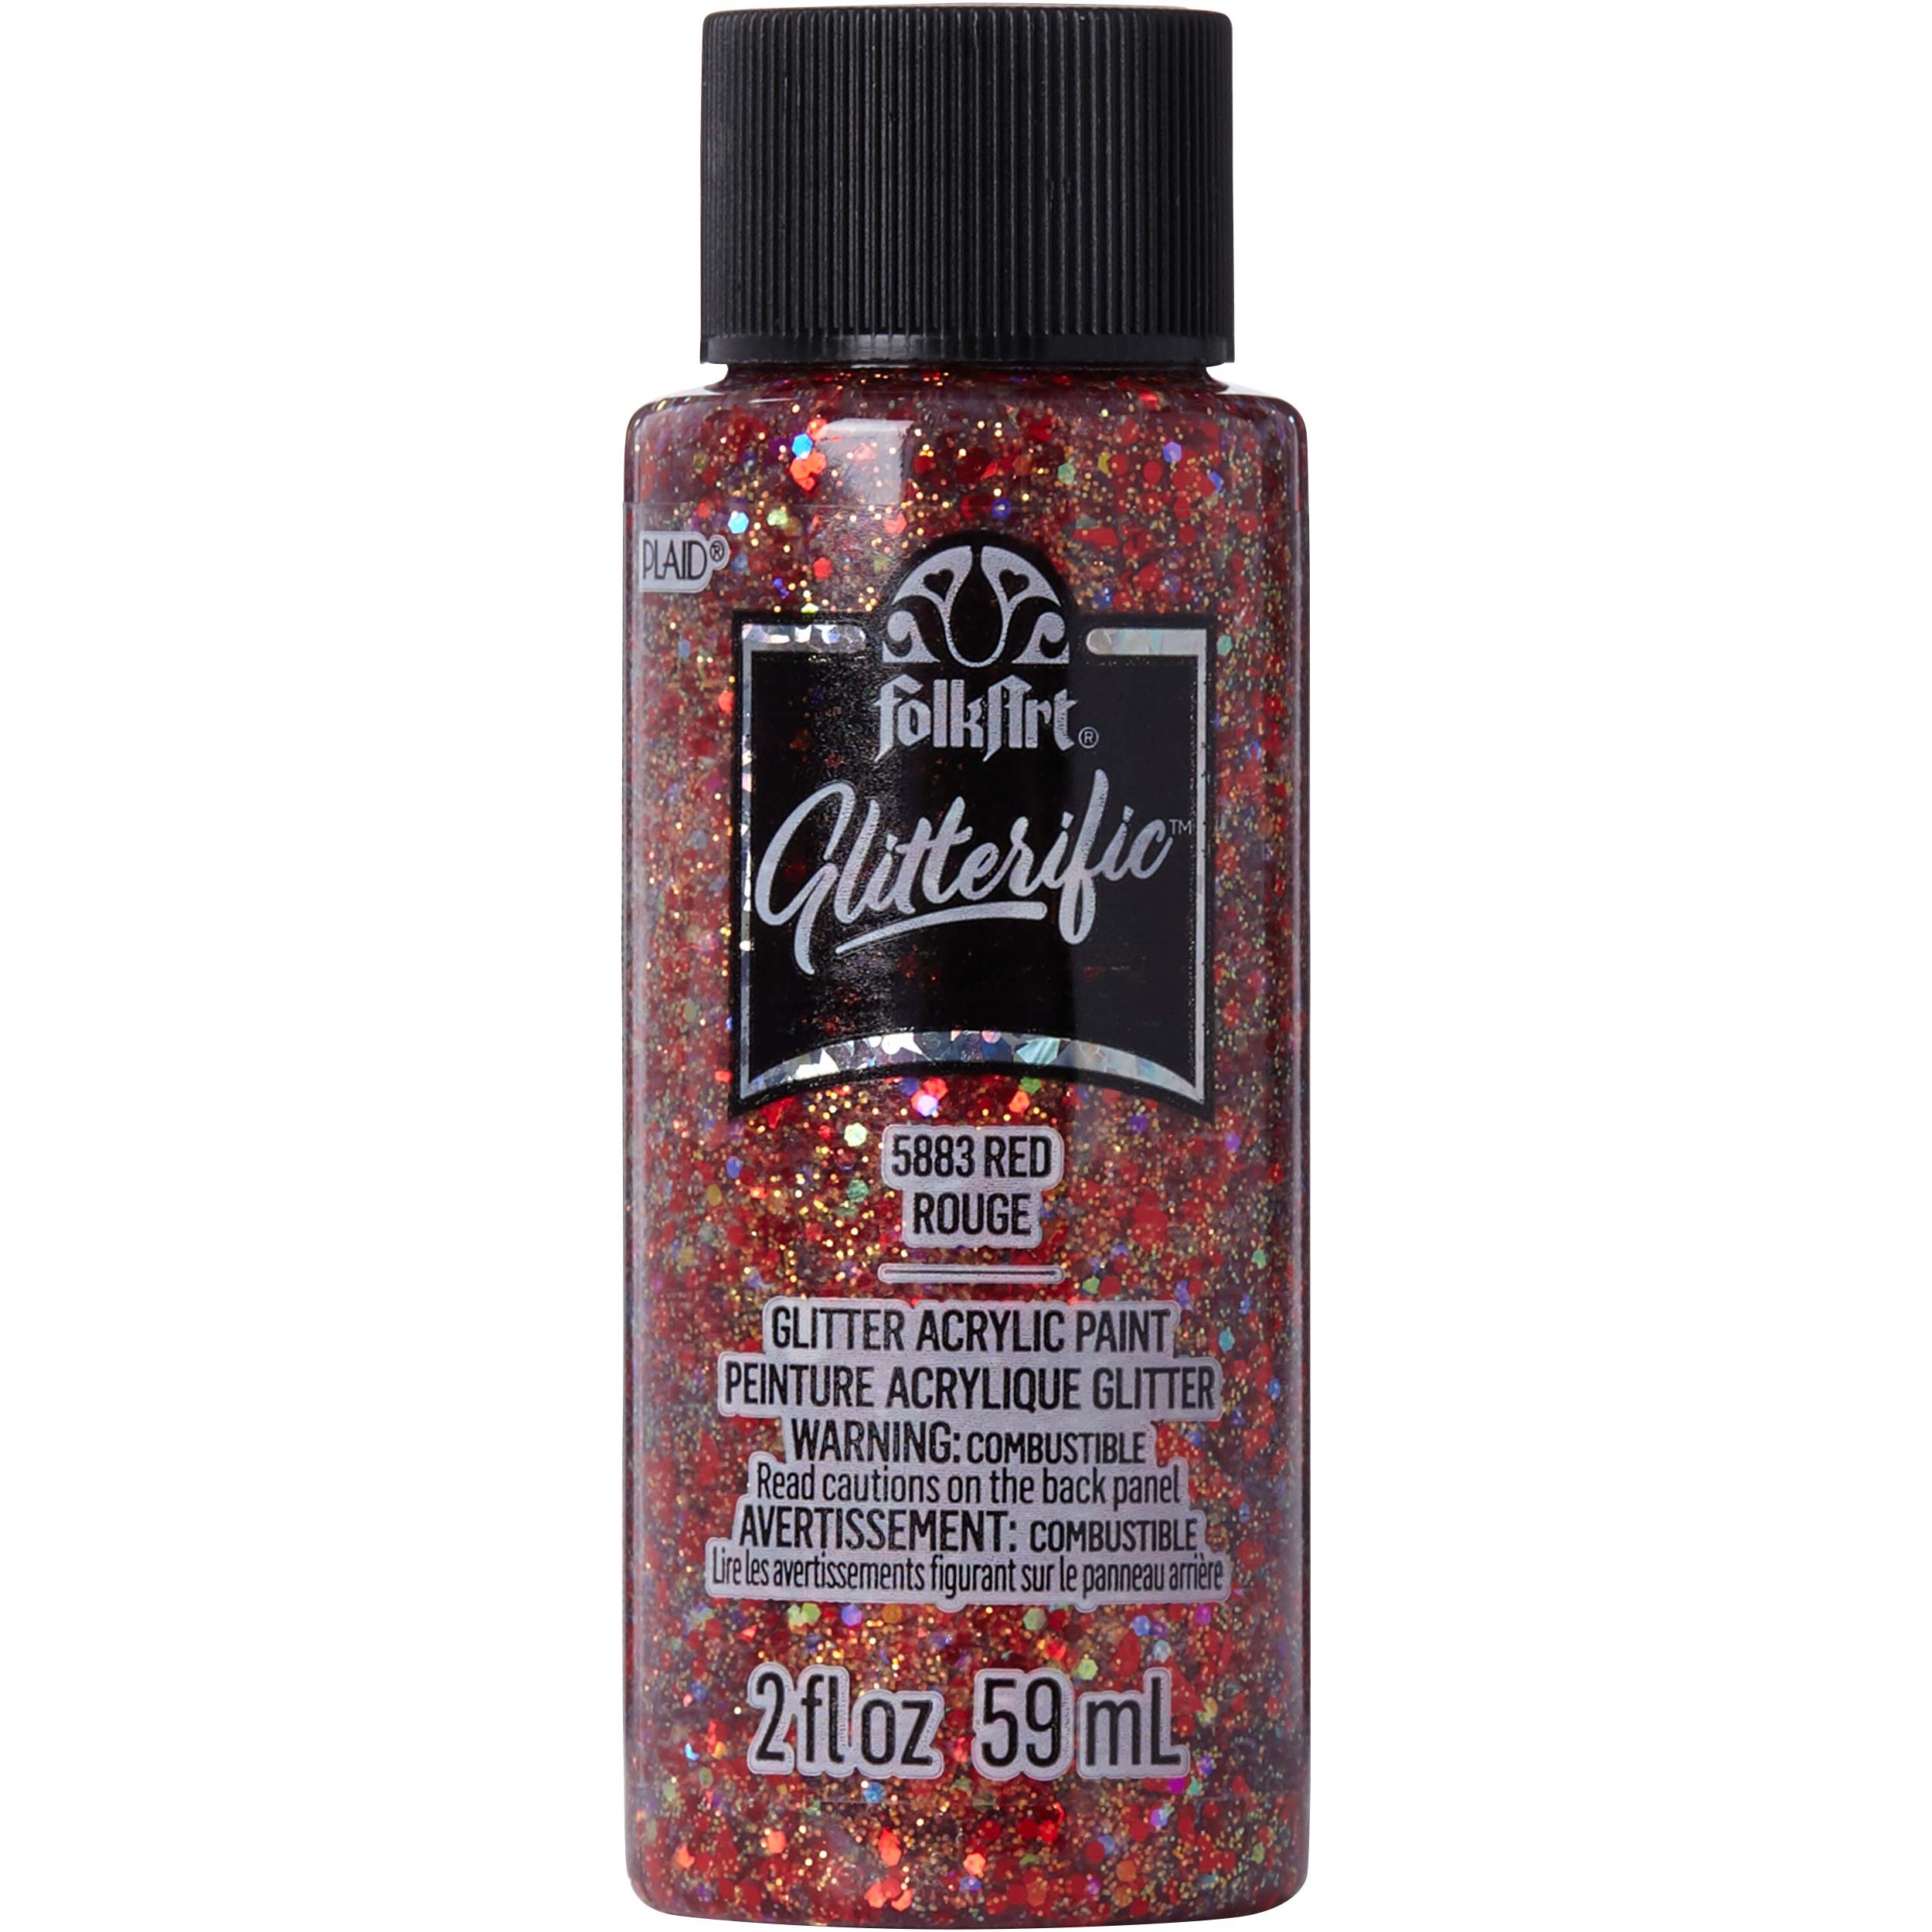 FolkArt ® Glitterific™ Acrylic Paint - Red, 2 oz. - 5883